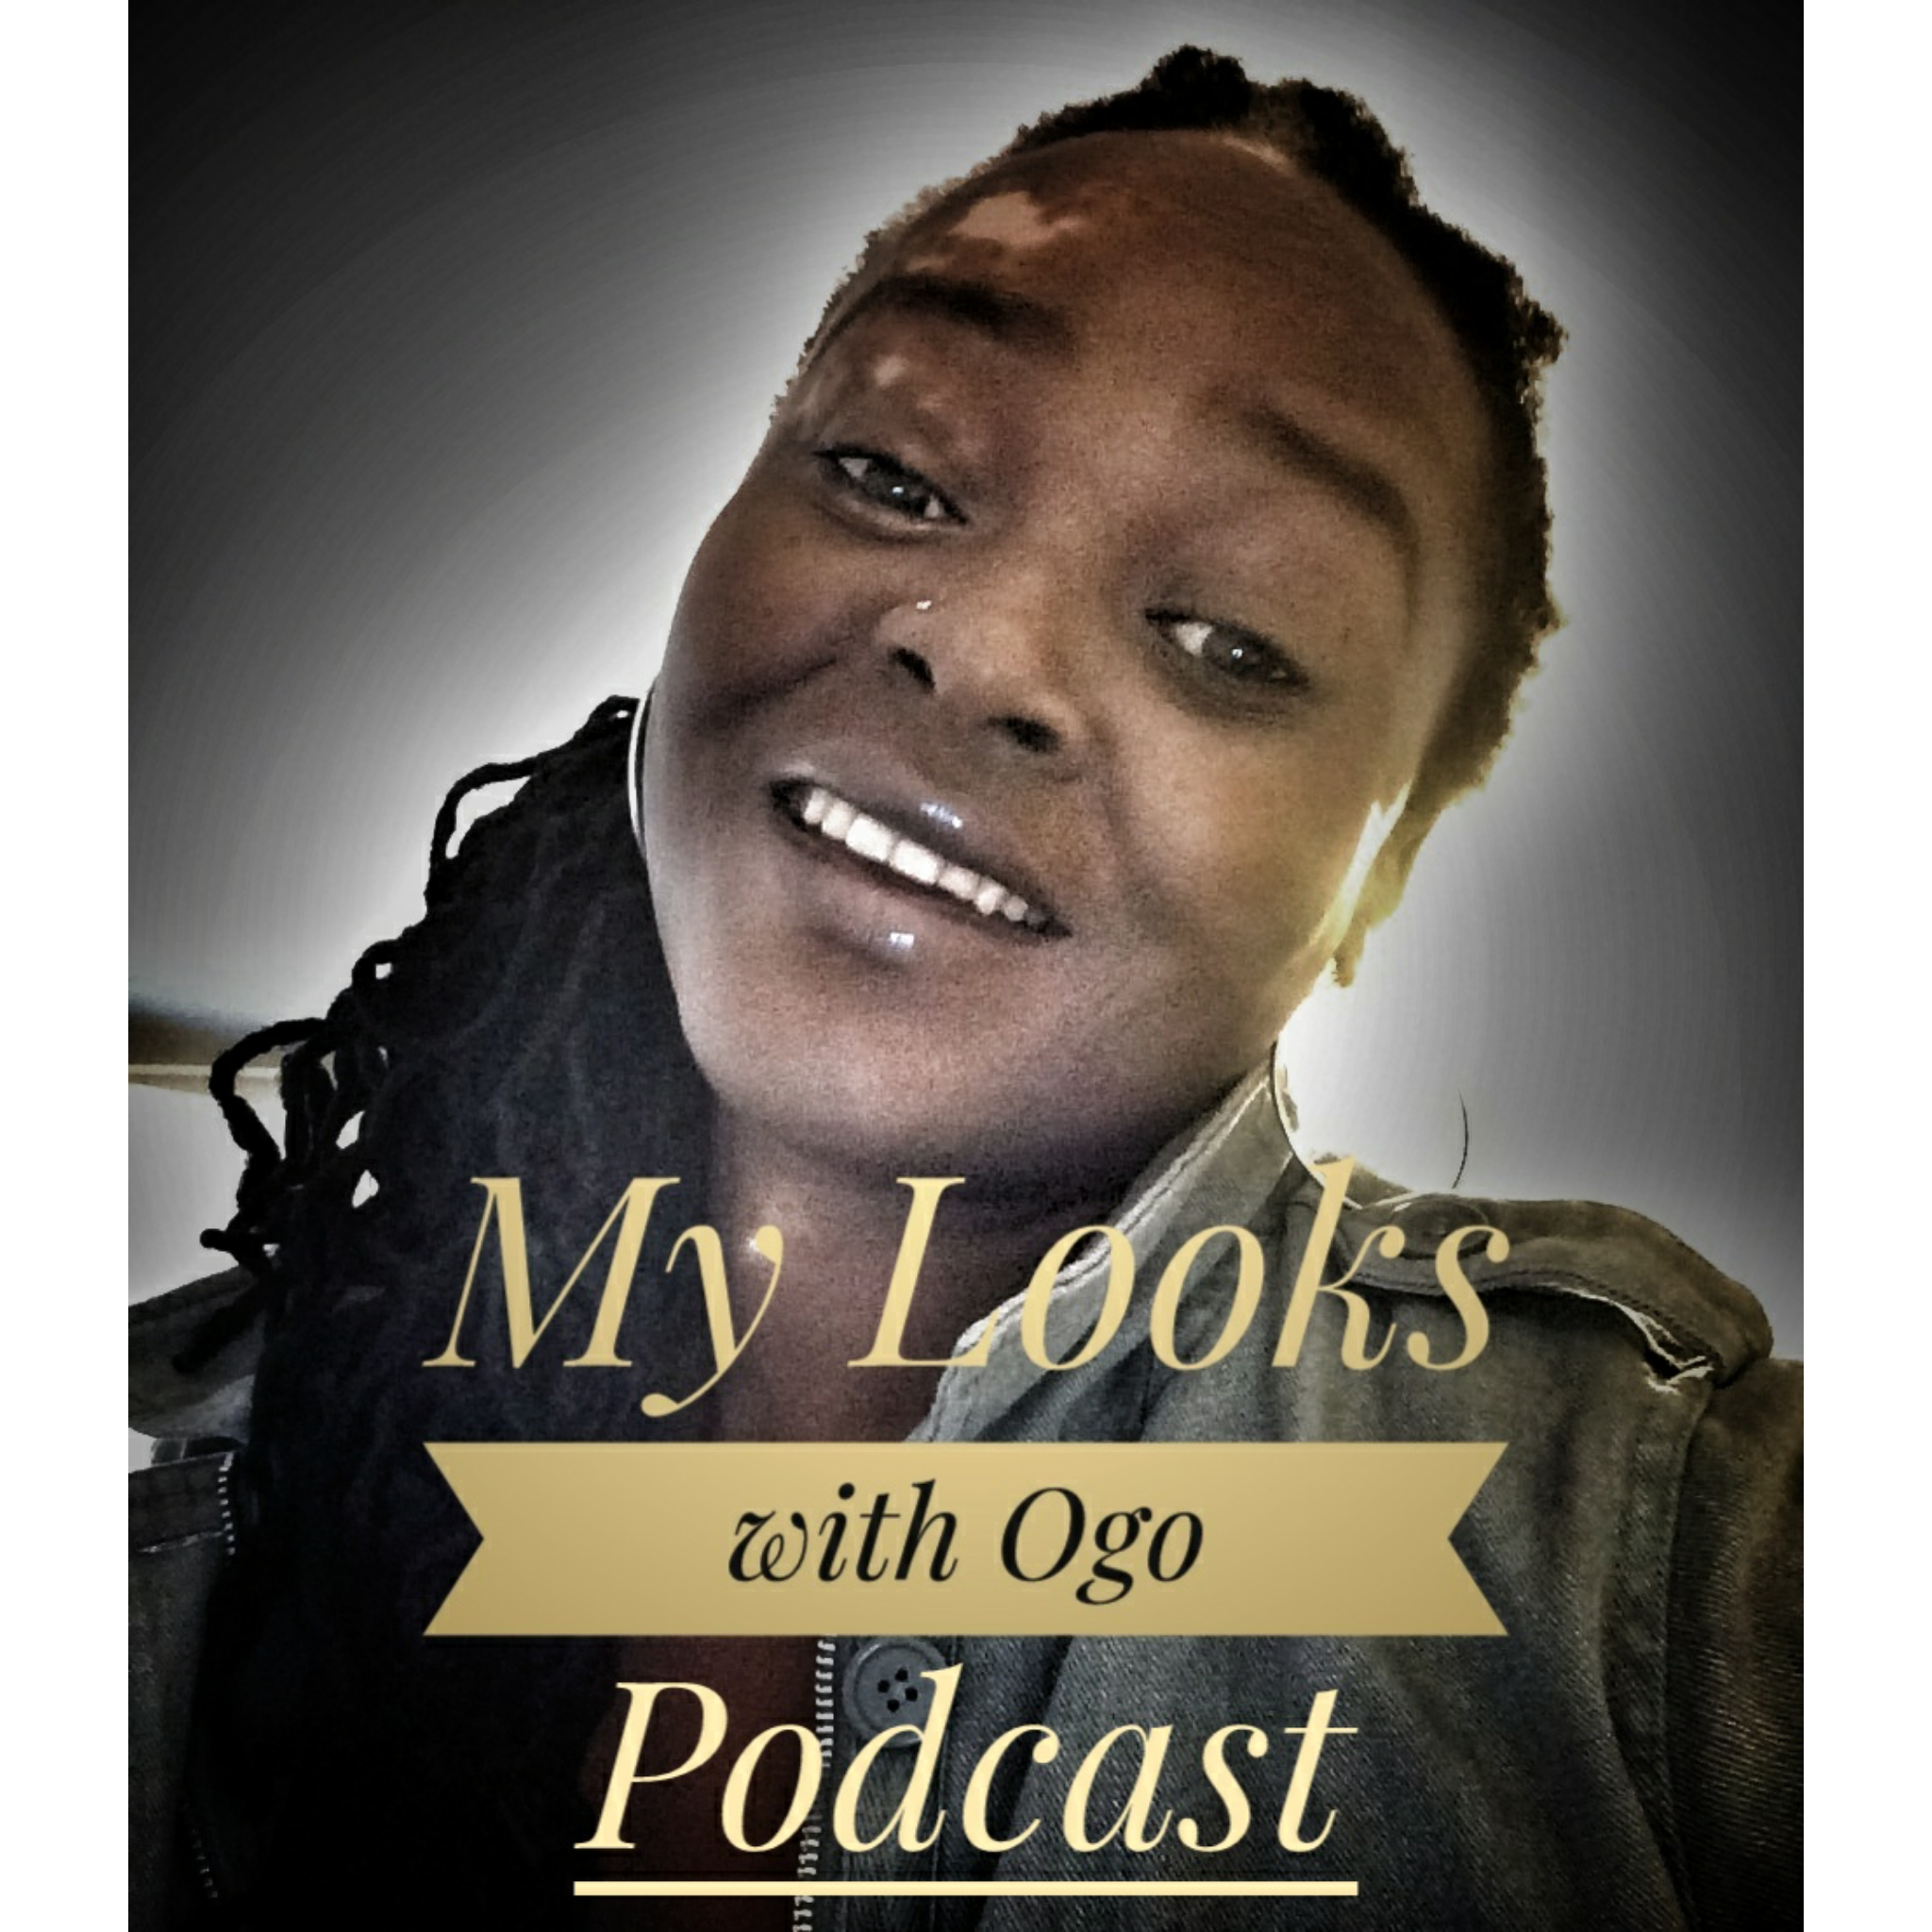 My Looks with Ogo Podcast